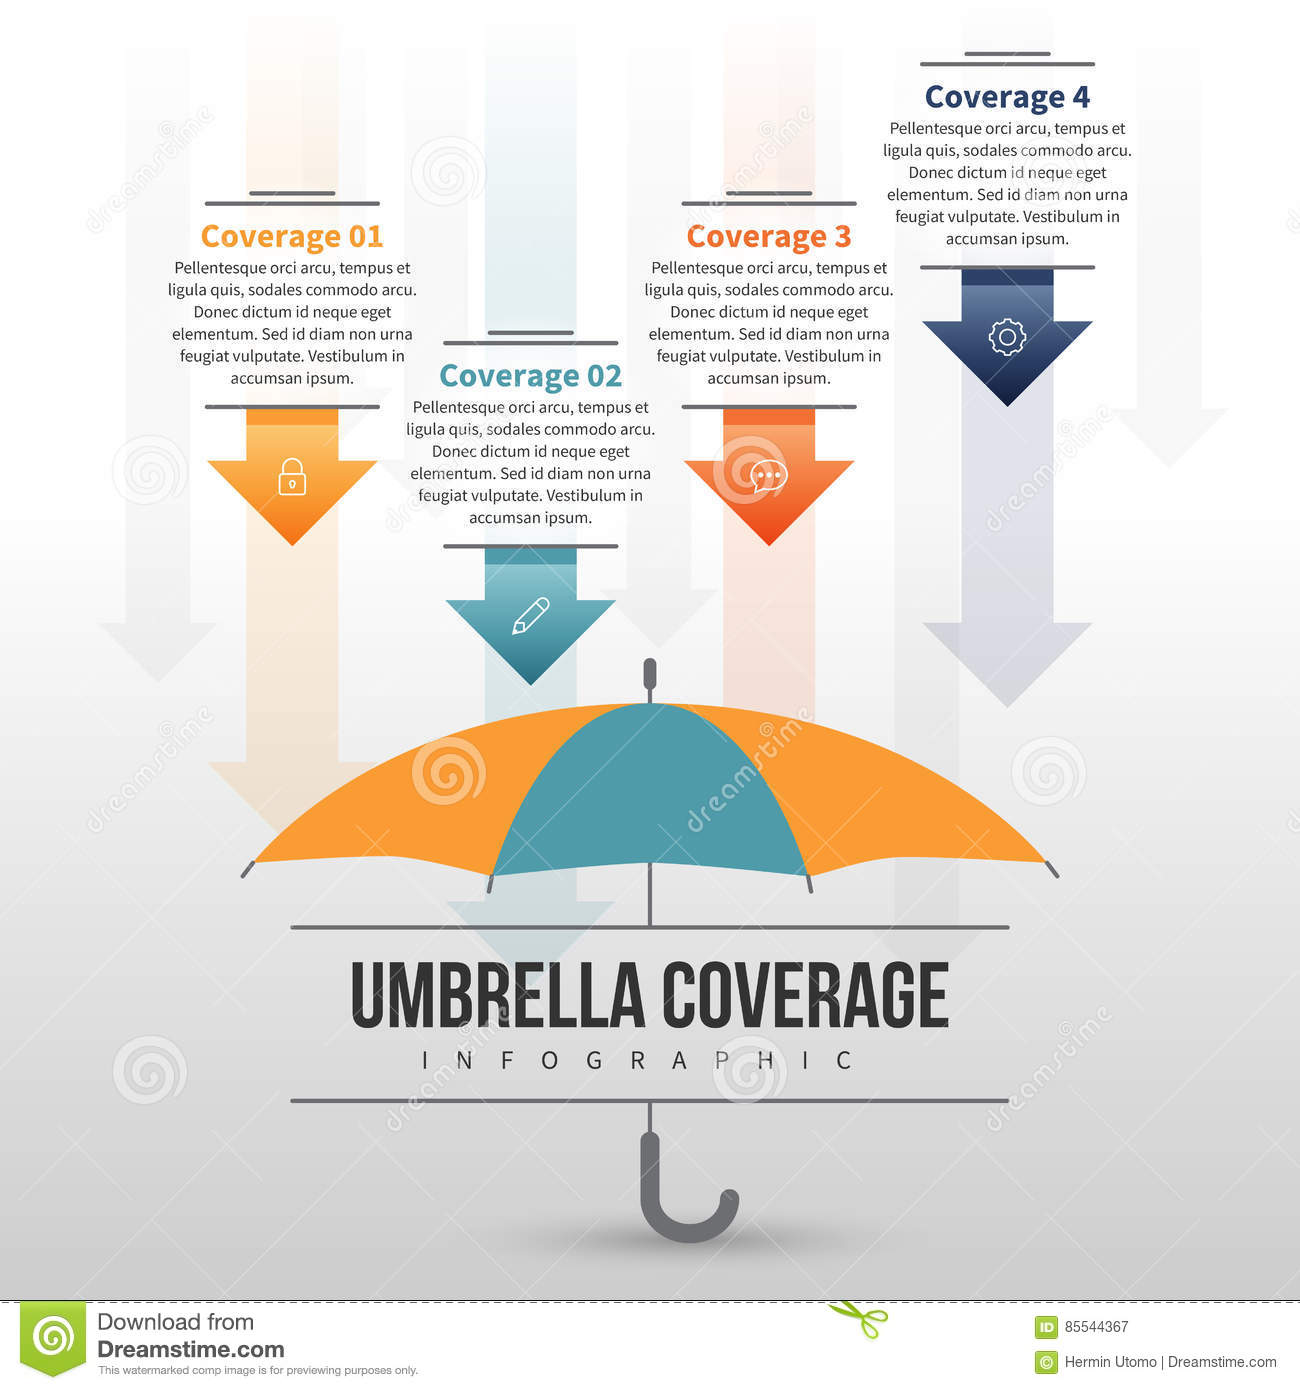 Umbrella Coverage Infographic Vector Illustration Design Element besides F E F D F likewise Control Room Lydig Contruction as well Target Operating Model V To  X likewise D Ge Concord Dialer Issue Rj X. on work security diagram